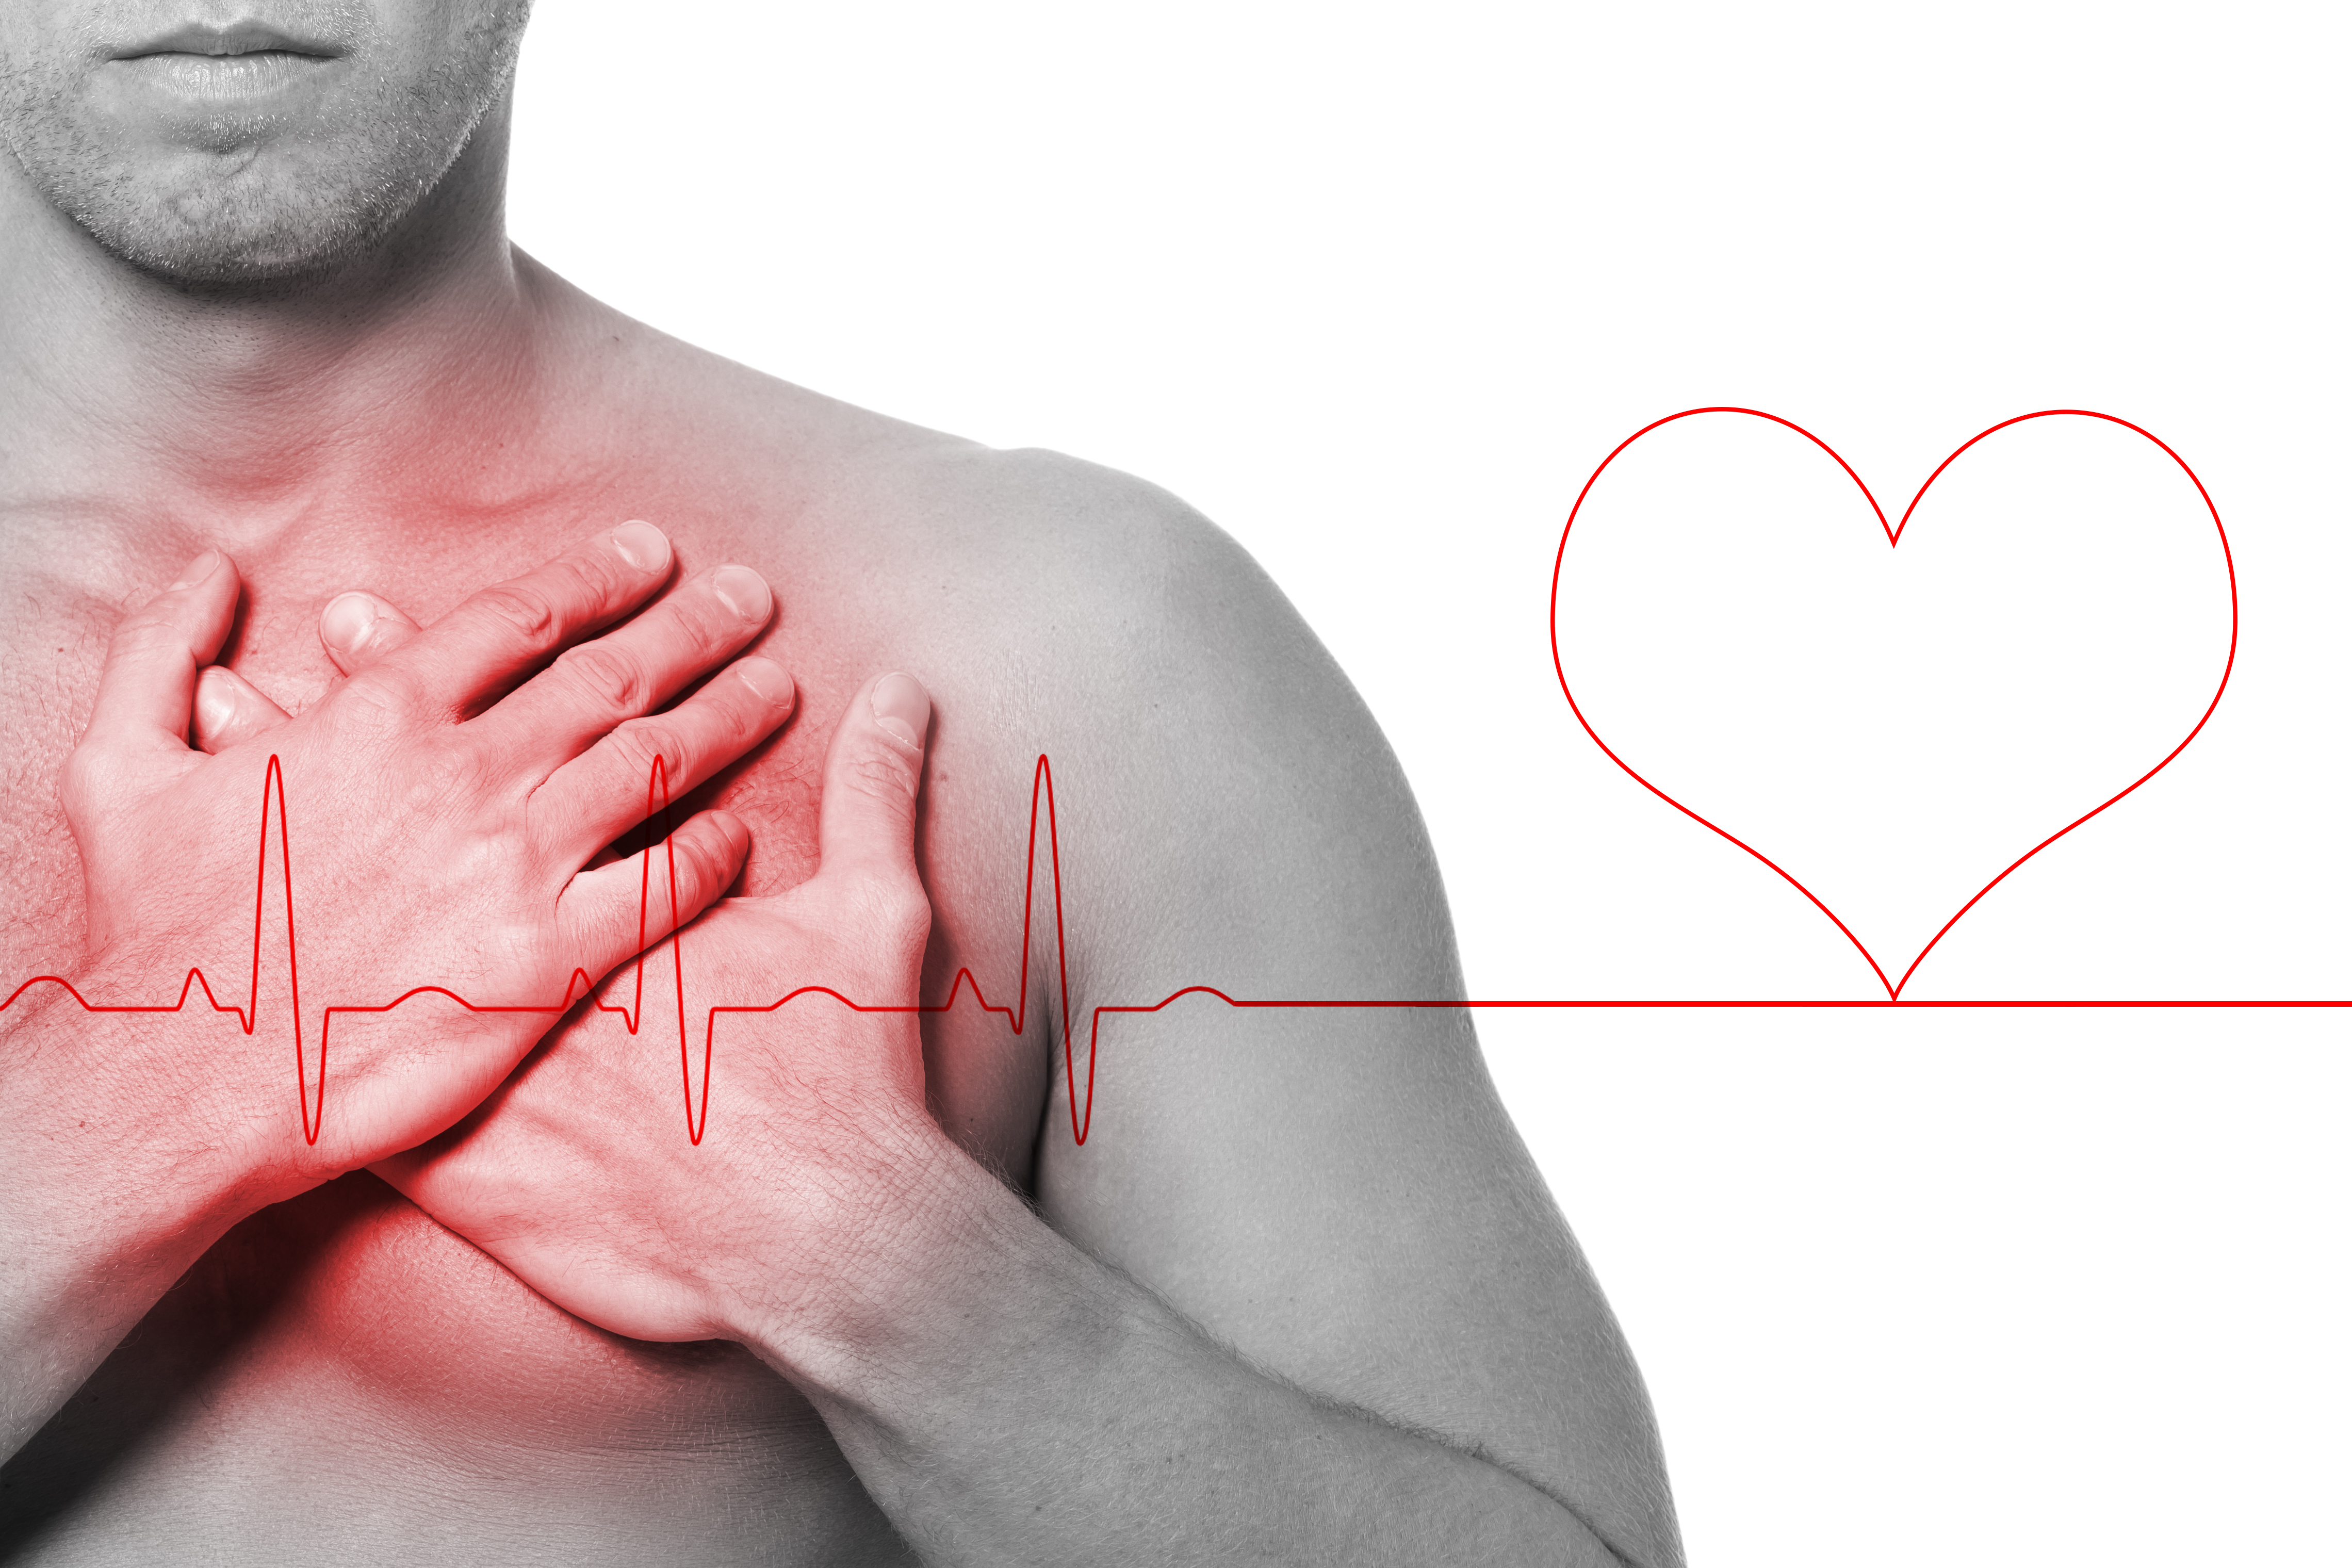 PVCs for Two Minutes Straight: Does this Mean Heart Problem?